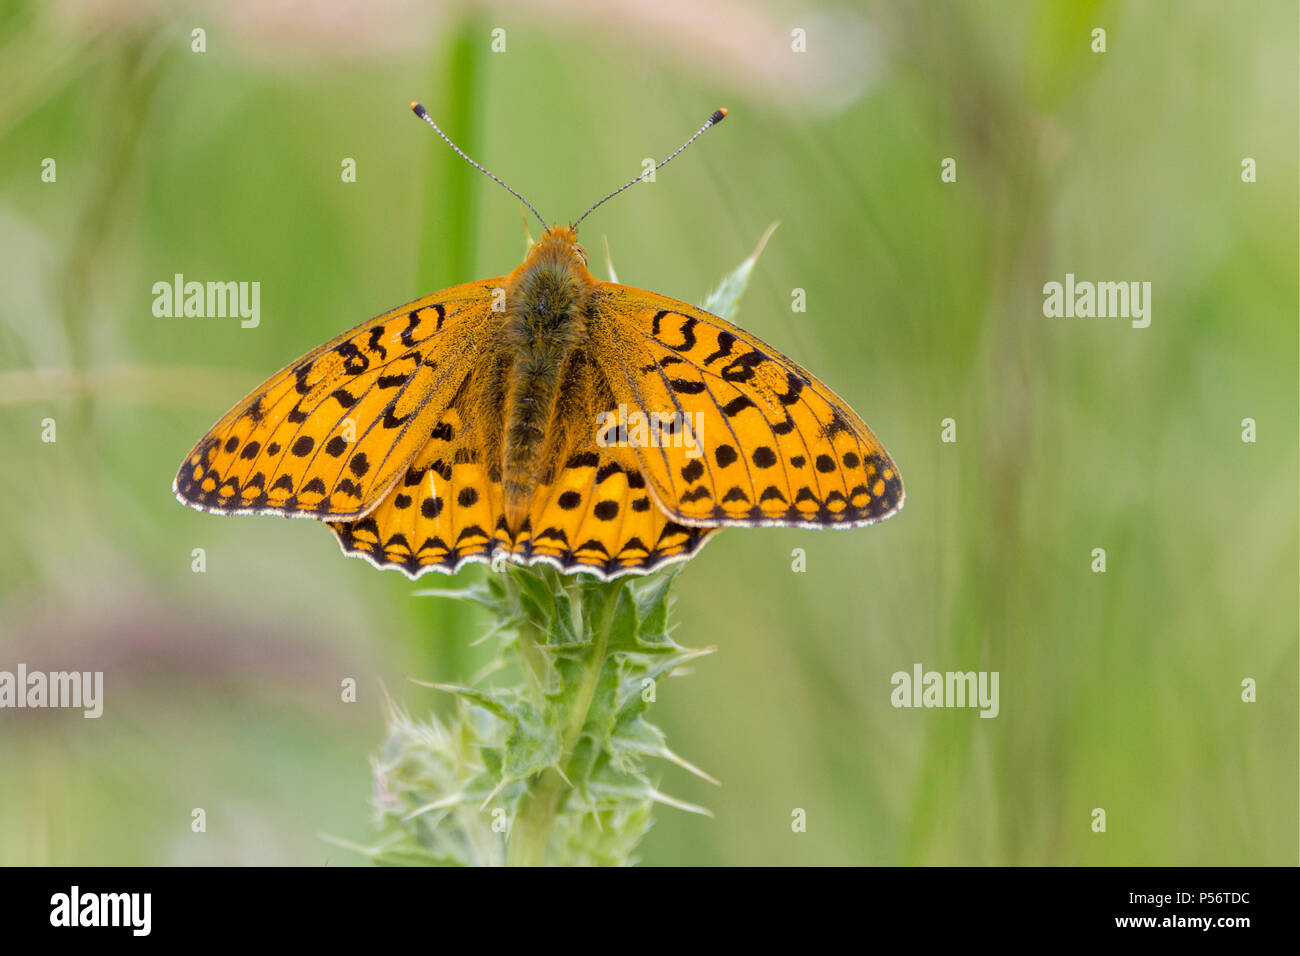 High brown fritillary butterfly in grassy meadow on South downs way UK. Scarce and endangered species. Orange upper wings with black markings. - Stock Image